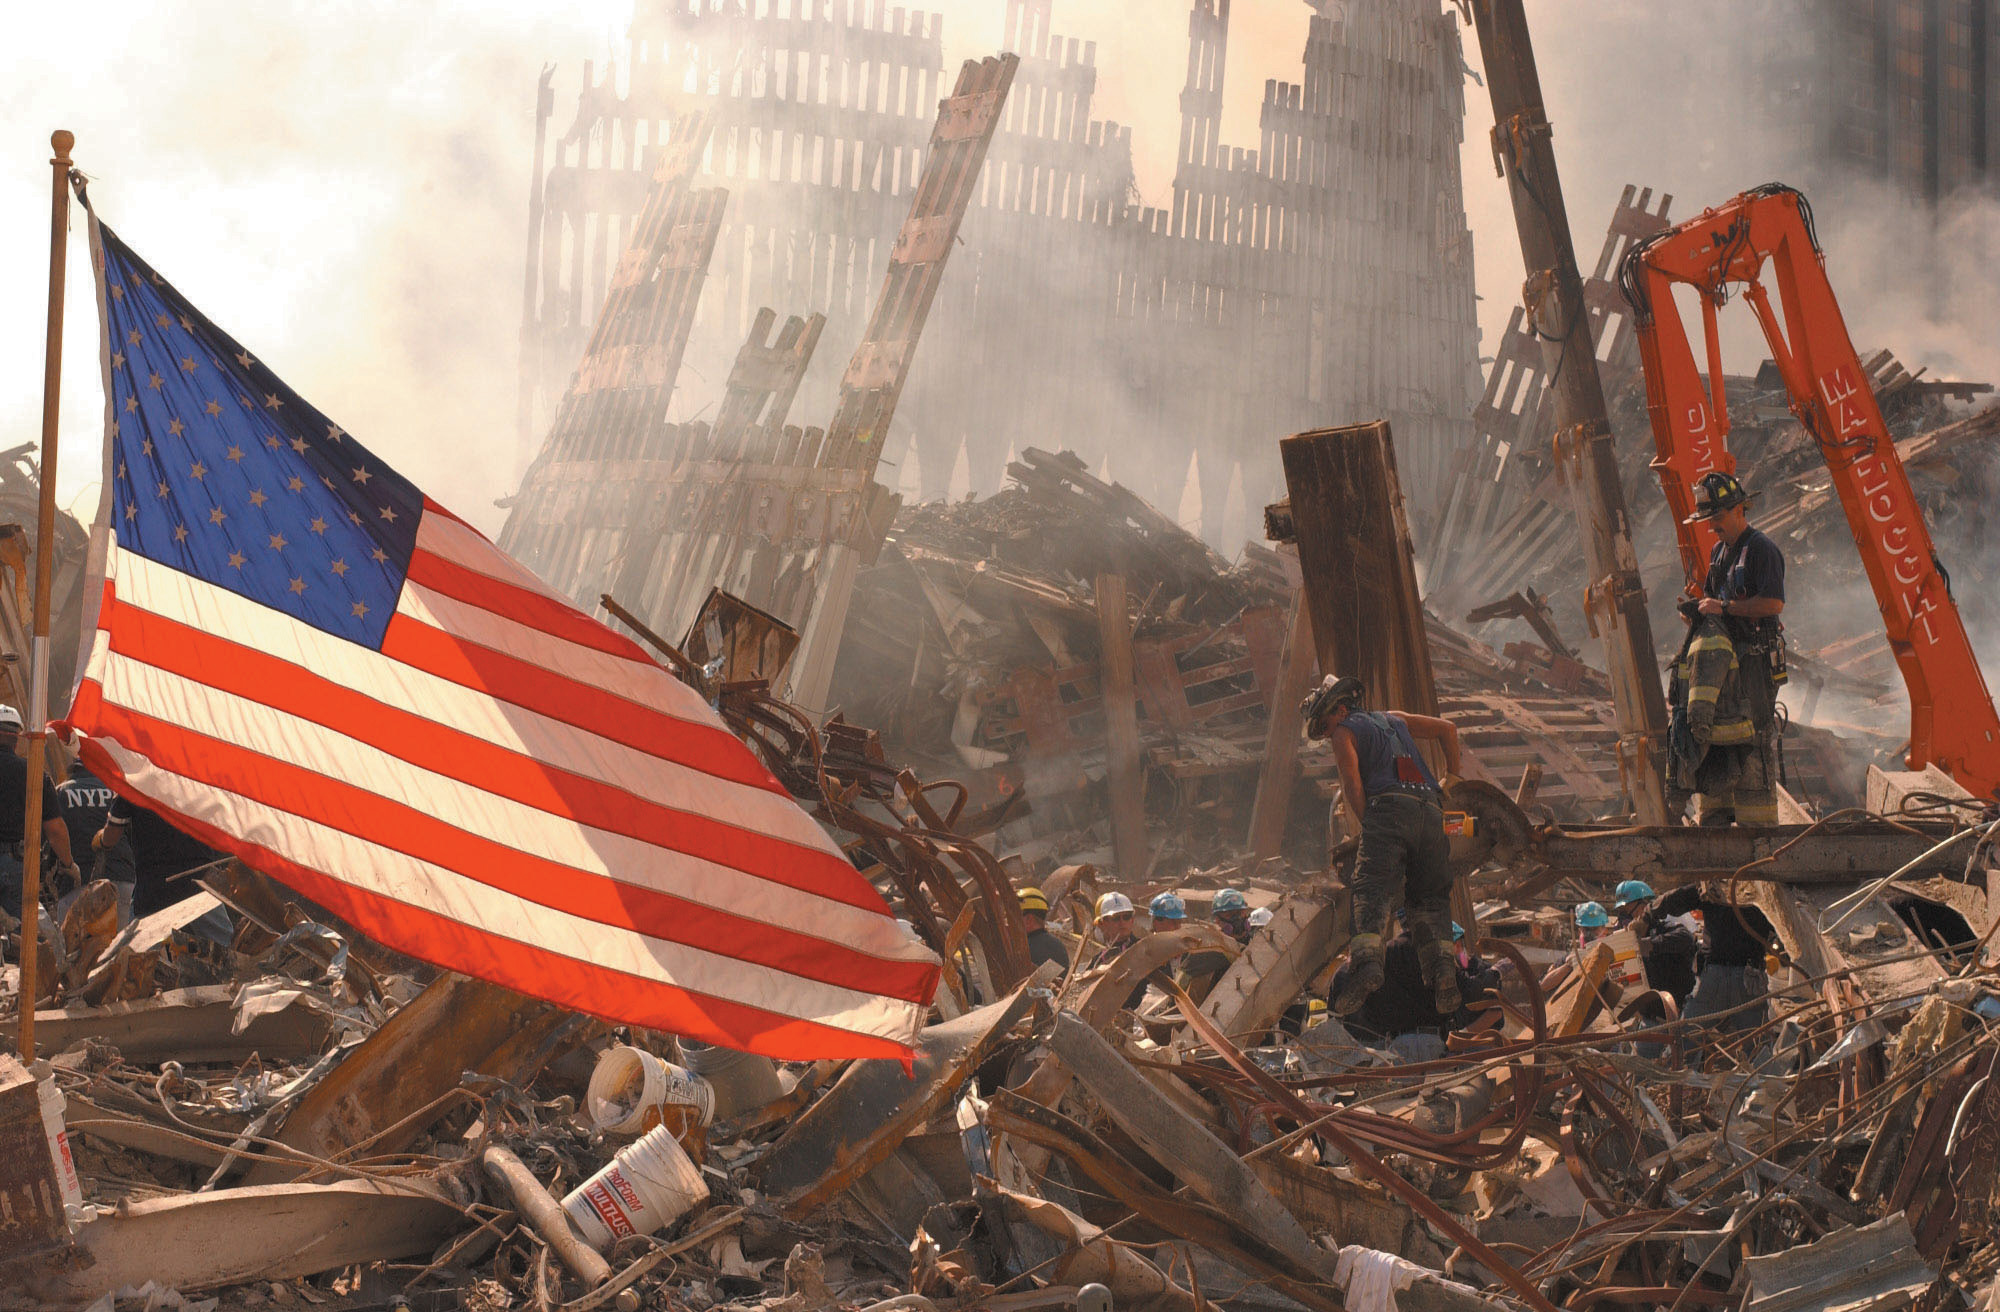 Today Is September 11th – Please Take Some Time To Remember That